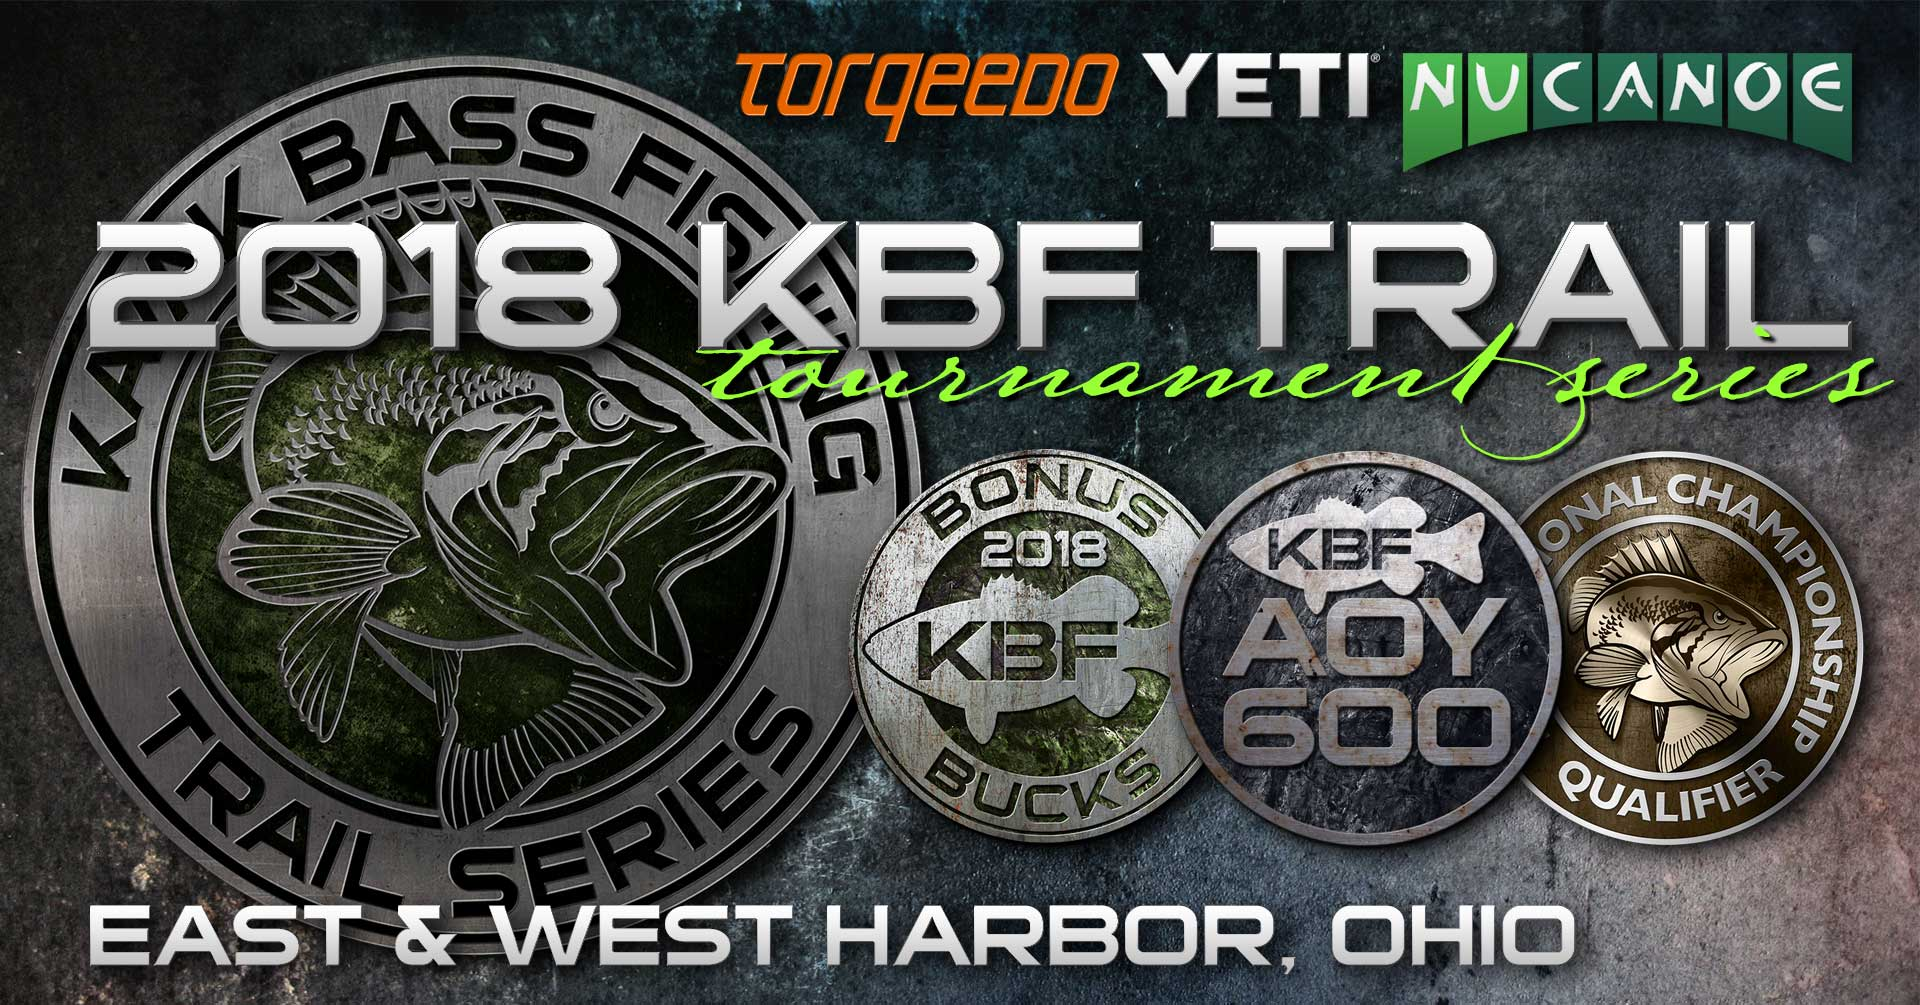 East-West Harbors KBF TRAIL Series Tournament